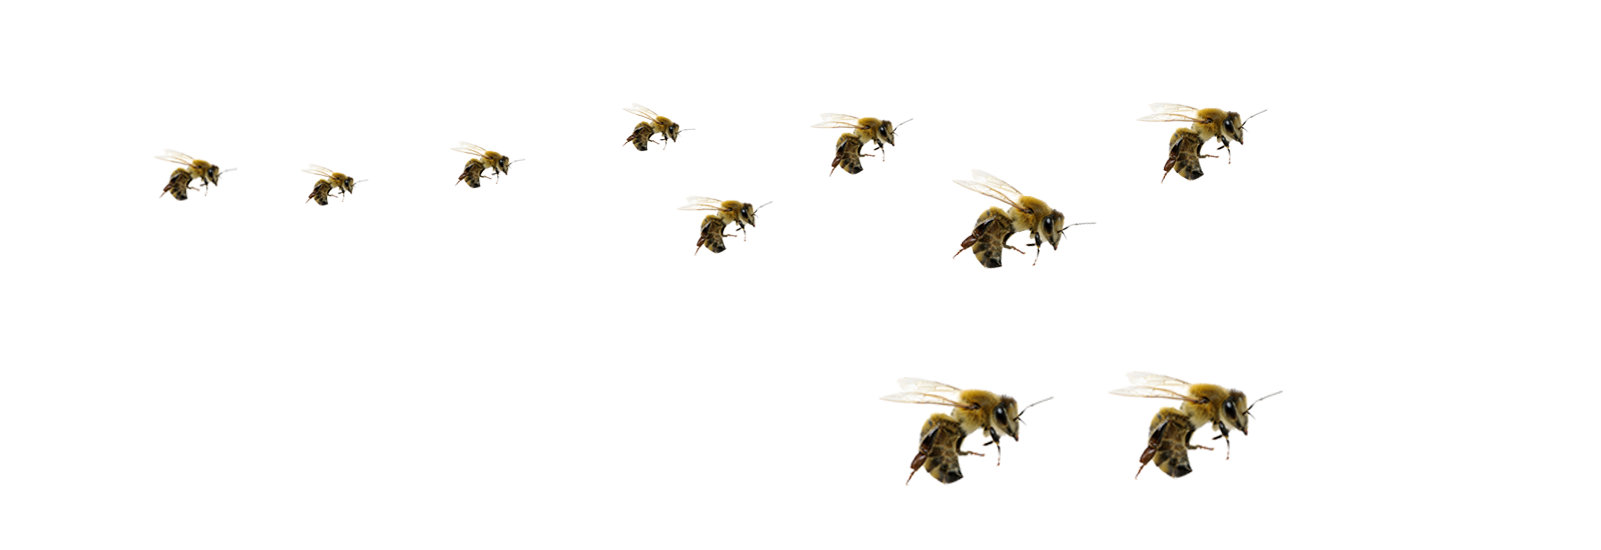 Robber Bees